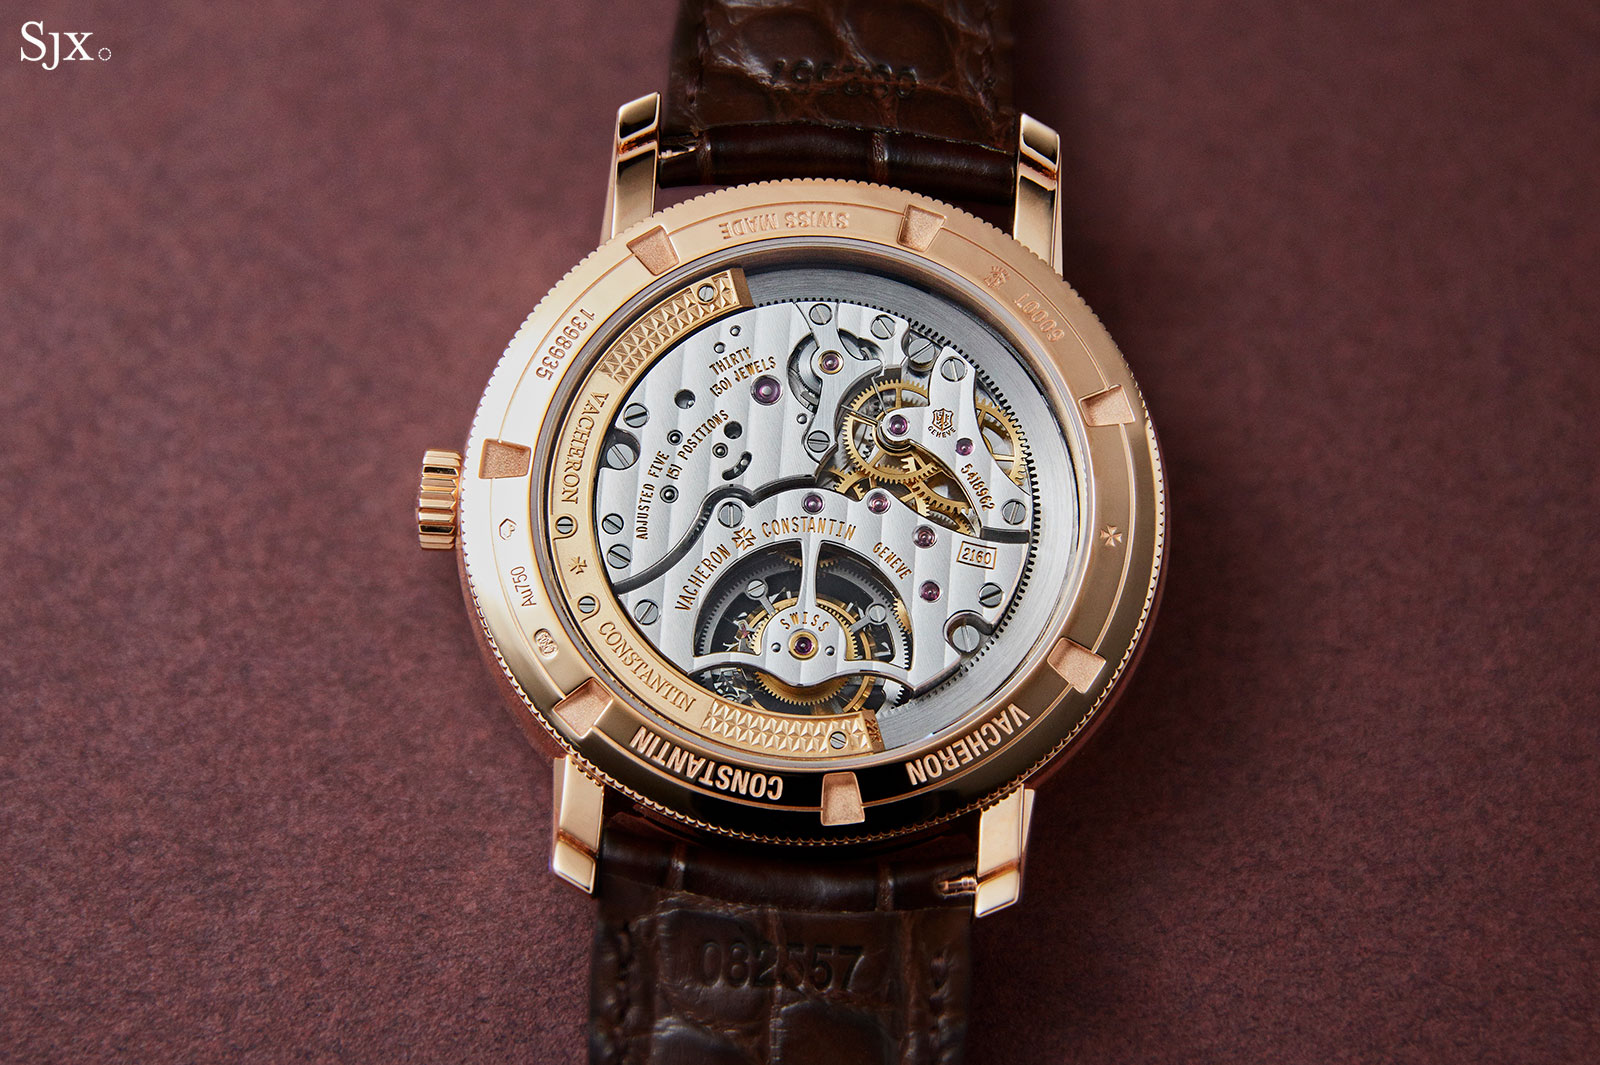 Vacheron Constantin Traditionnelle tourbillon automatic 2